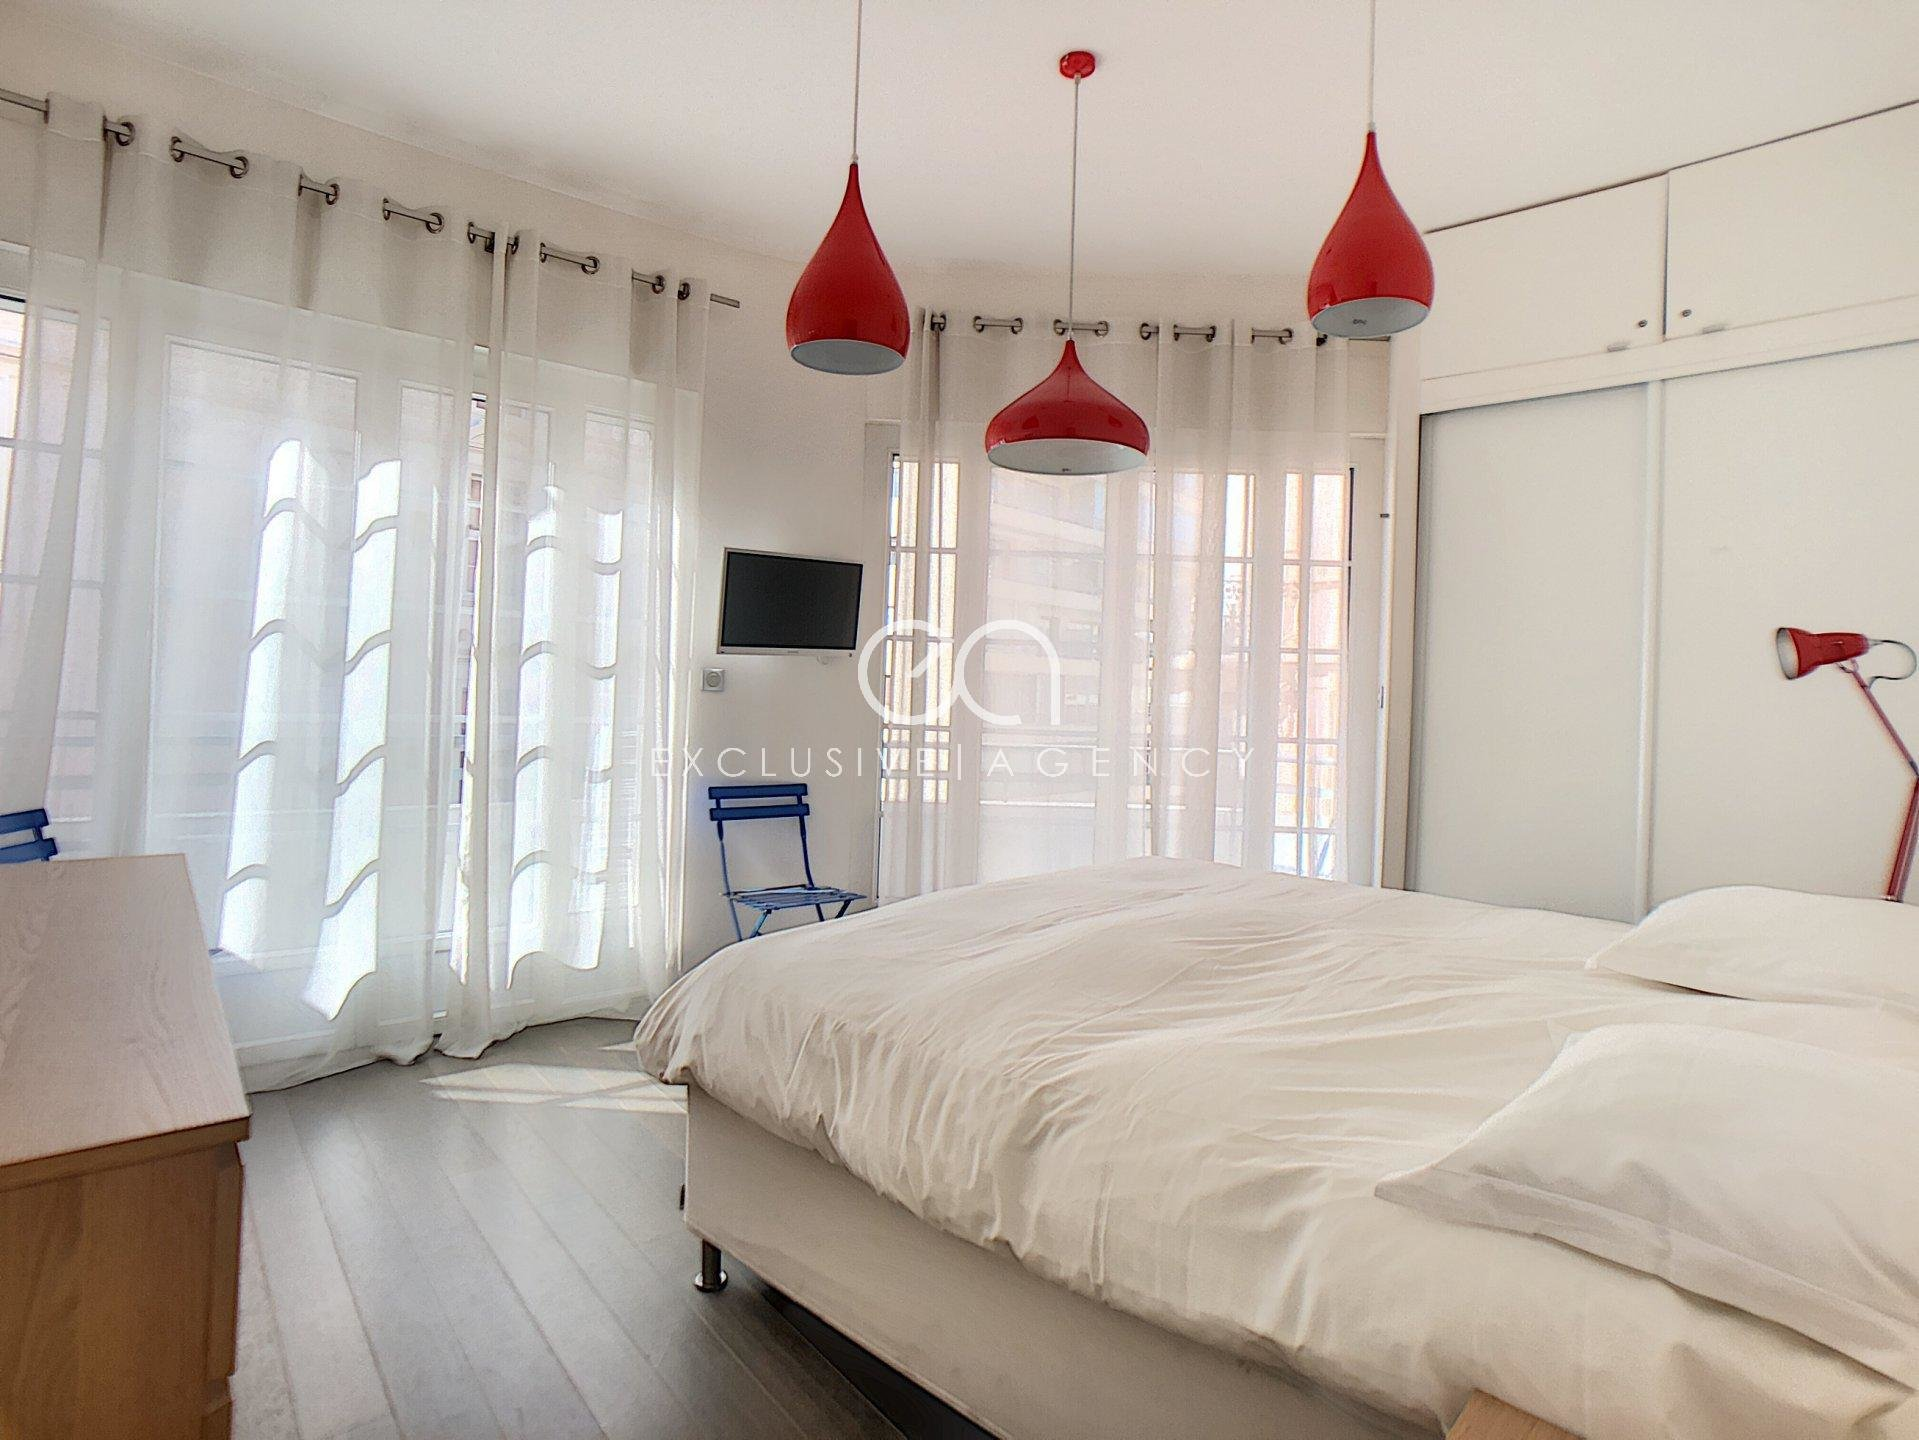 MONTHLY RENTAL CANNES CROISETTE 3-BEDROOMS APARTMENT 85SQM WITH TERRACE